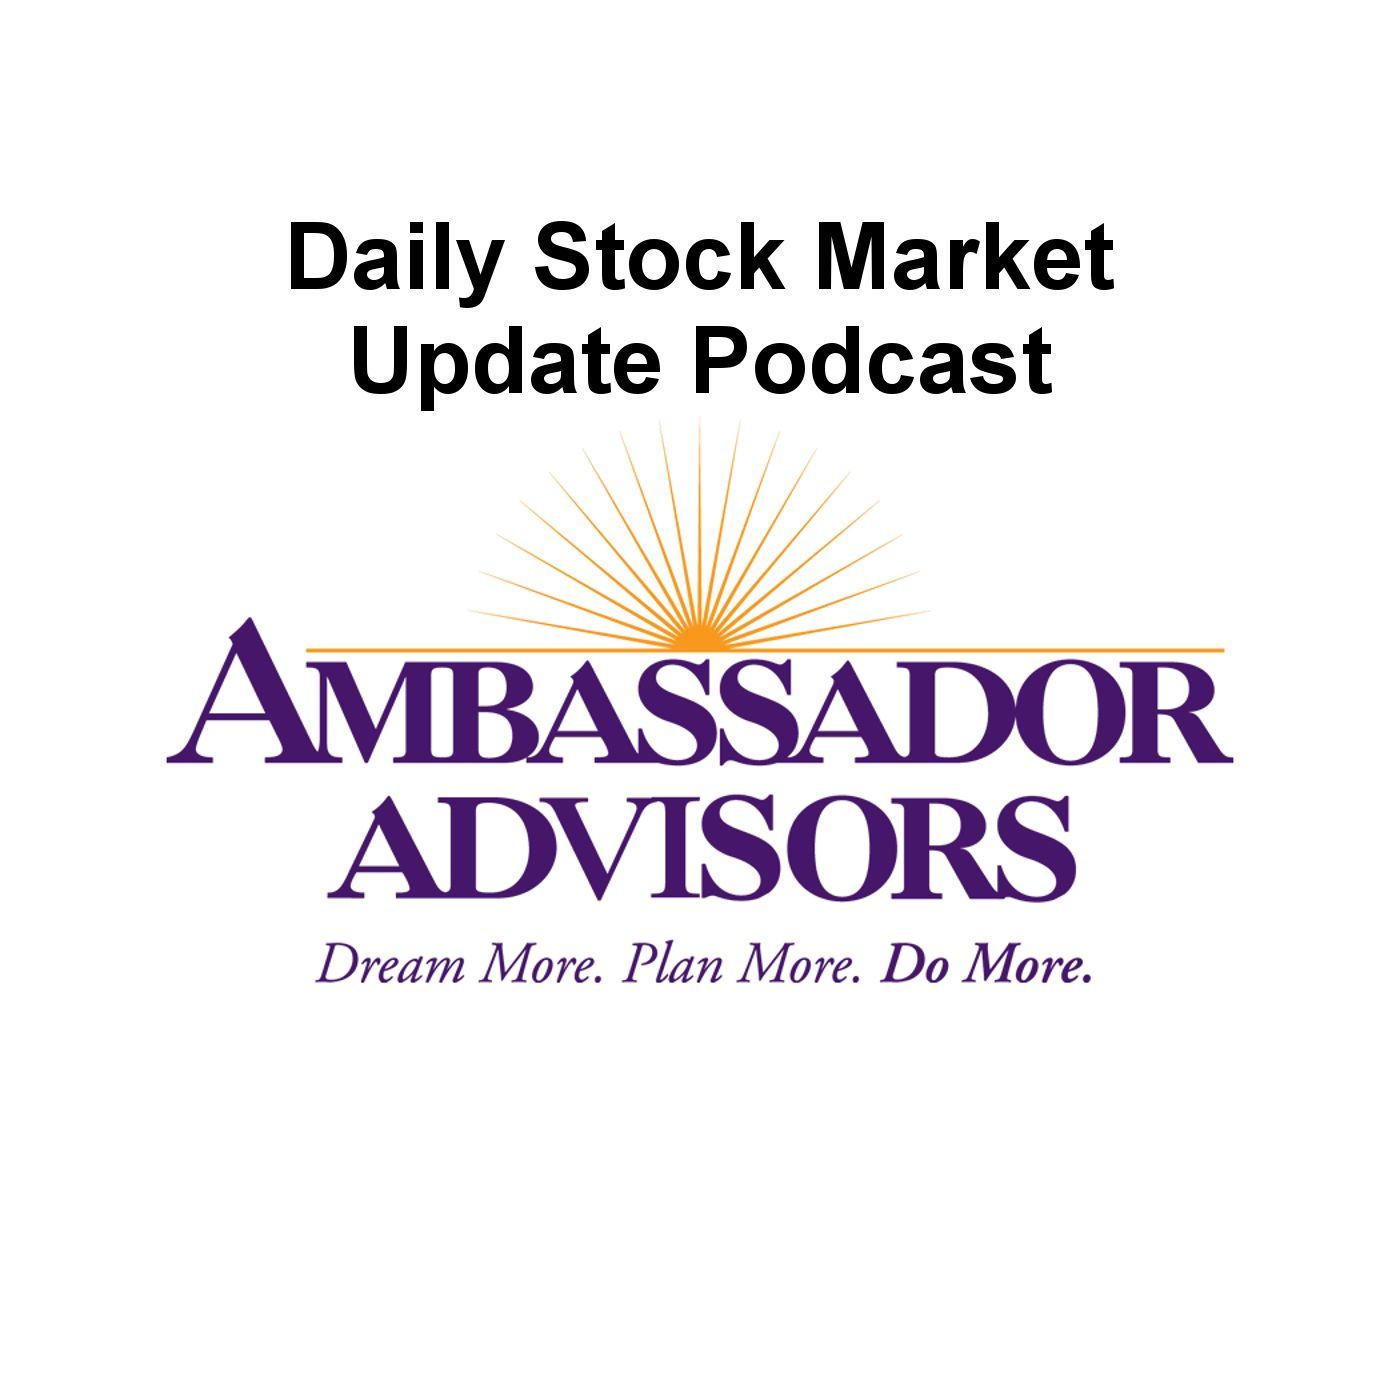 Daily Market Update from Ambassador Advisors, LLC